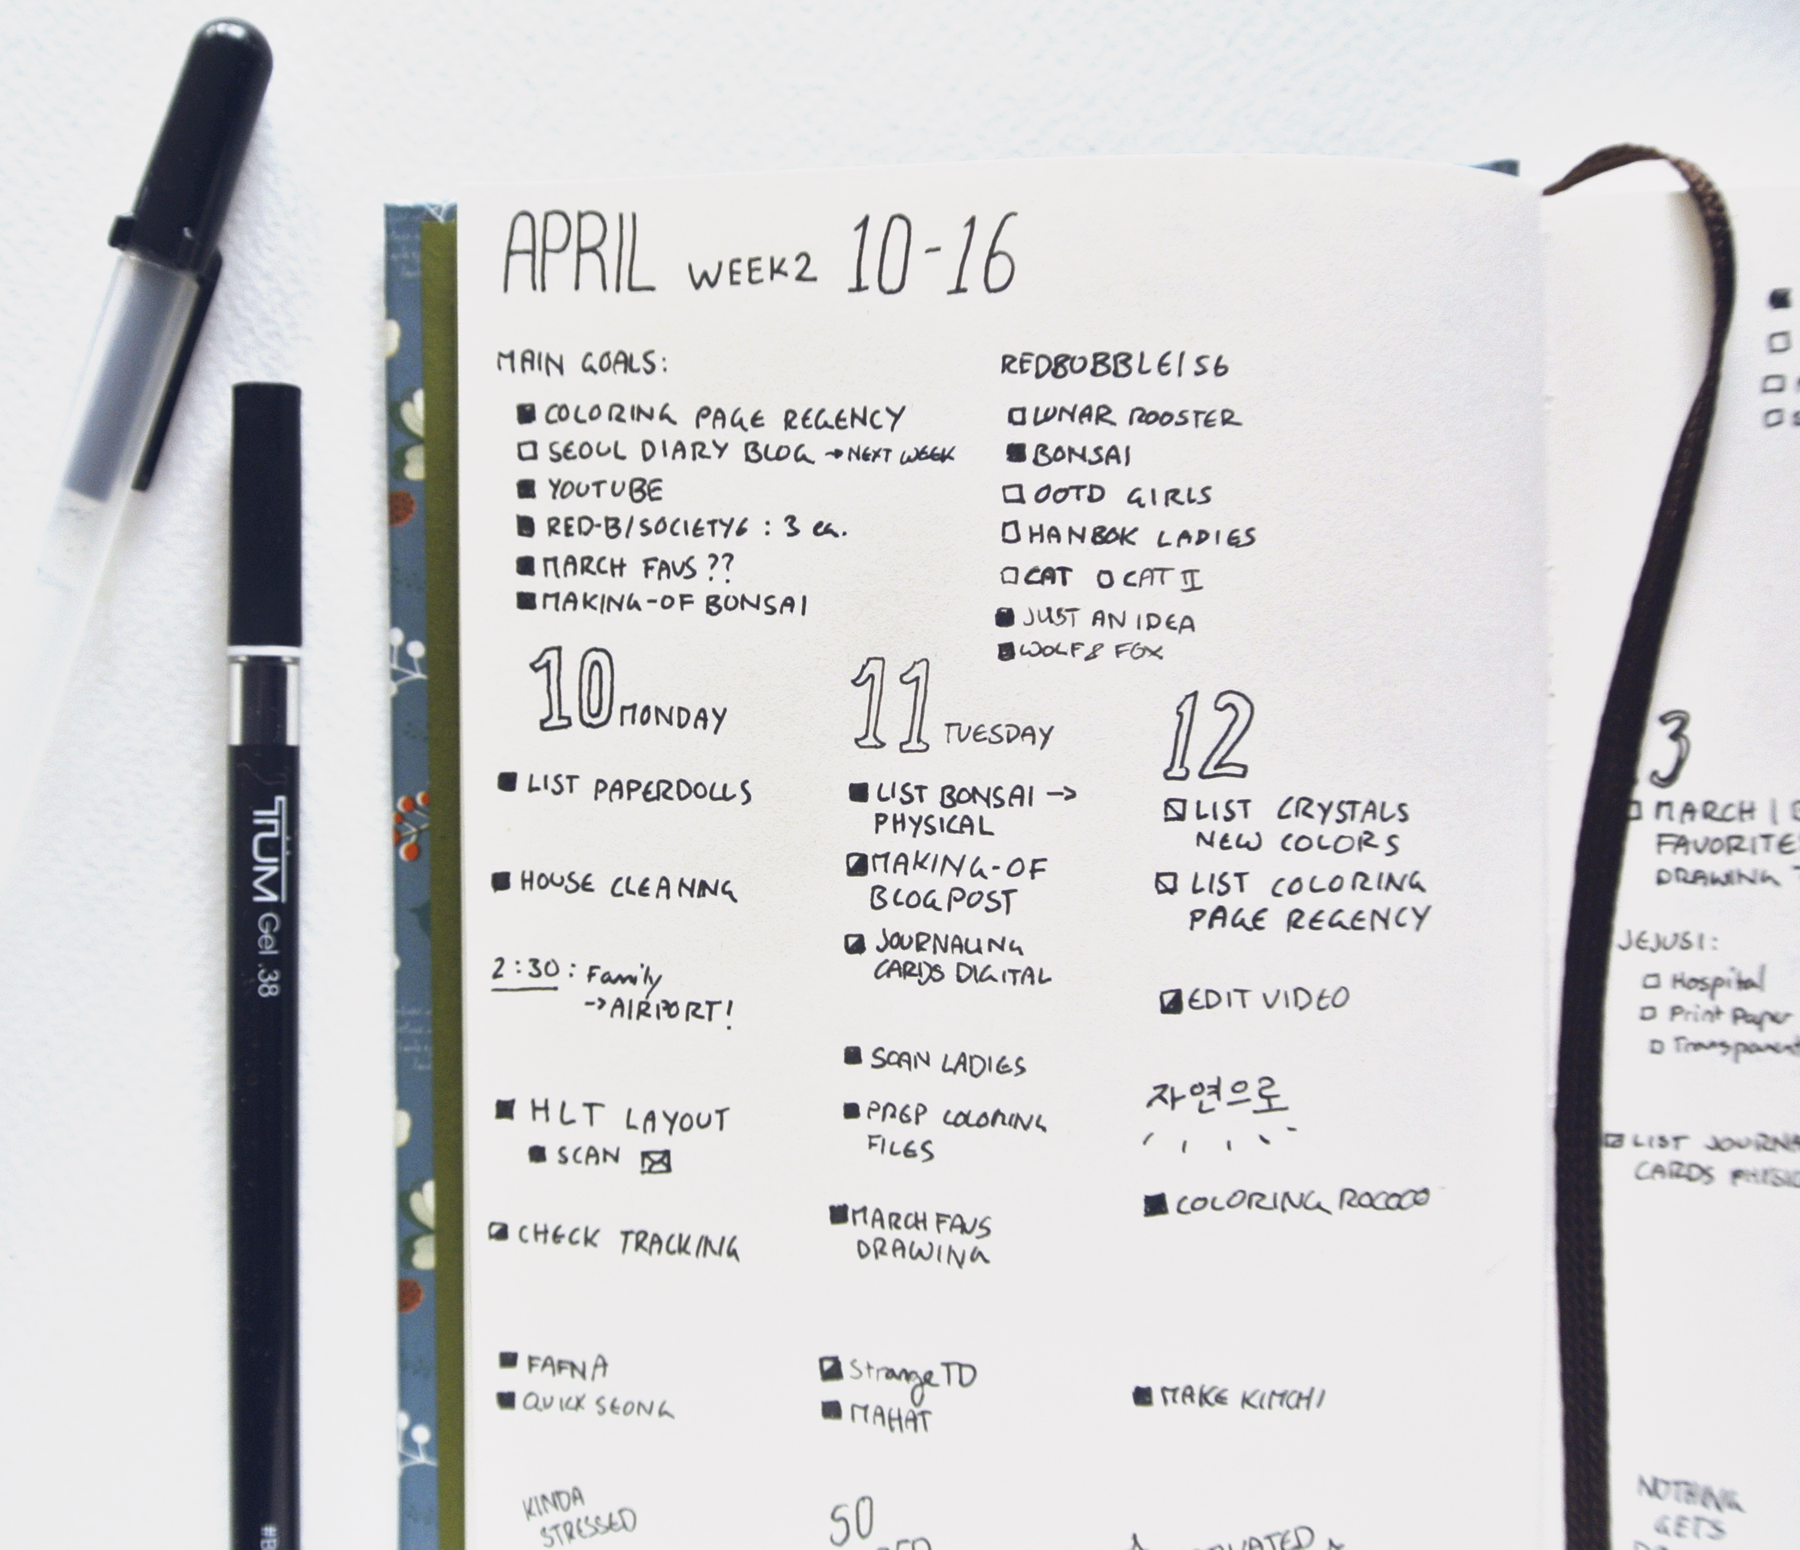 Productivity & Motivation in my Bullet Journal. Lots of task lists!